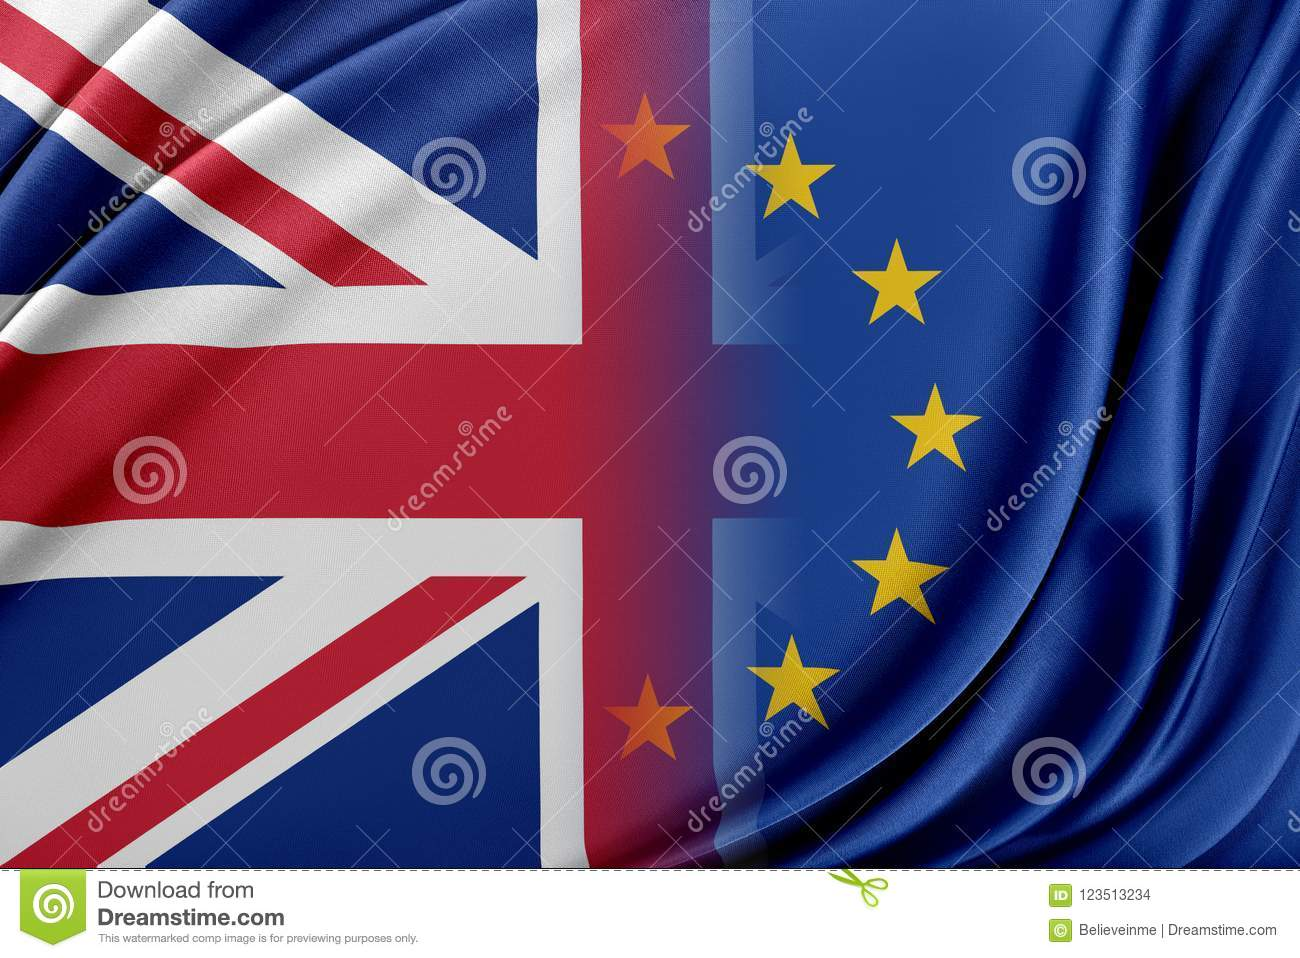 United Kingdom and European Union, a relationship with many ups and downs